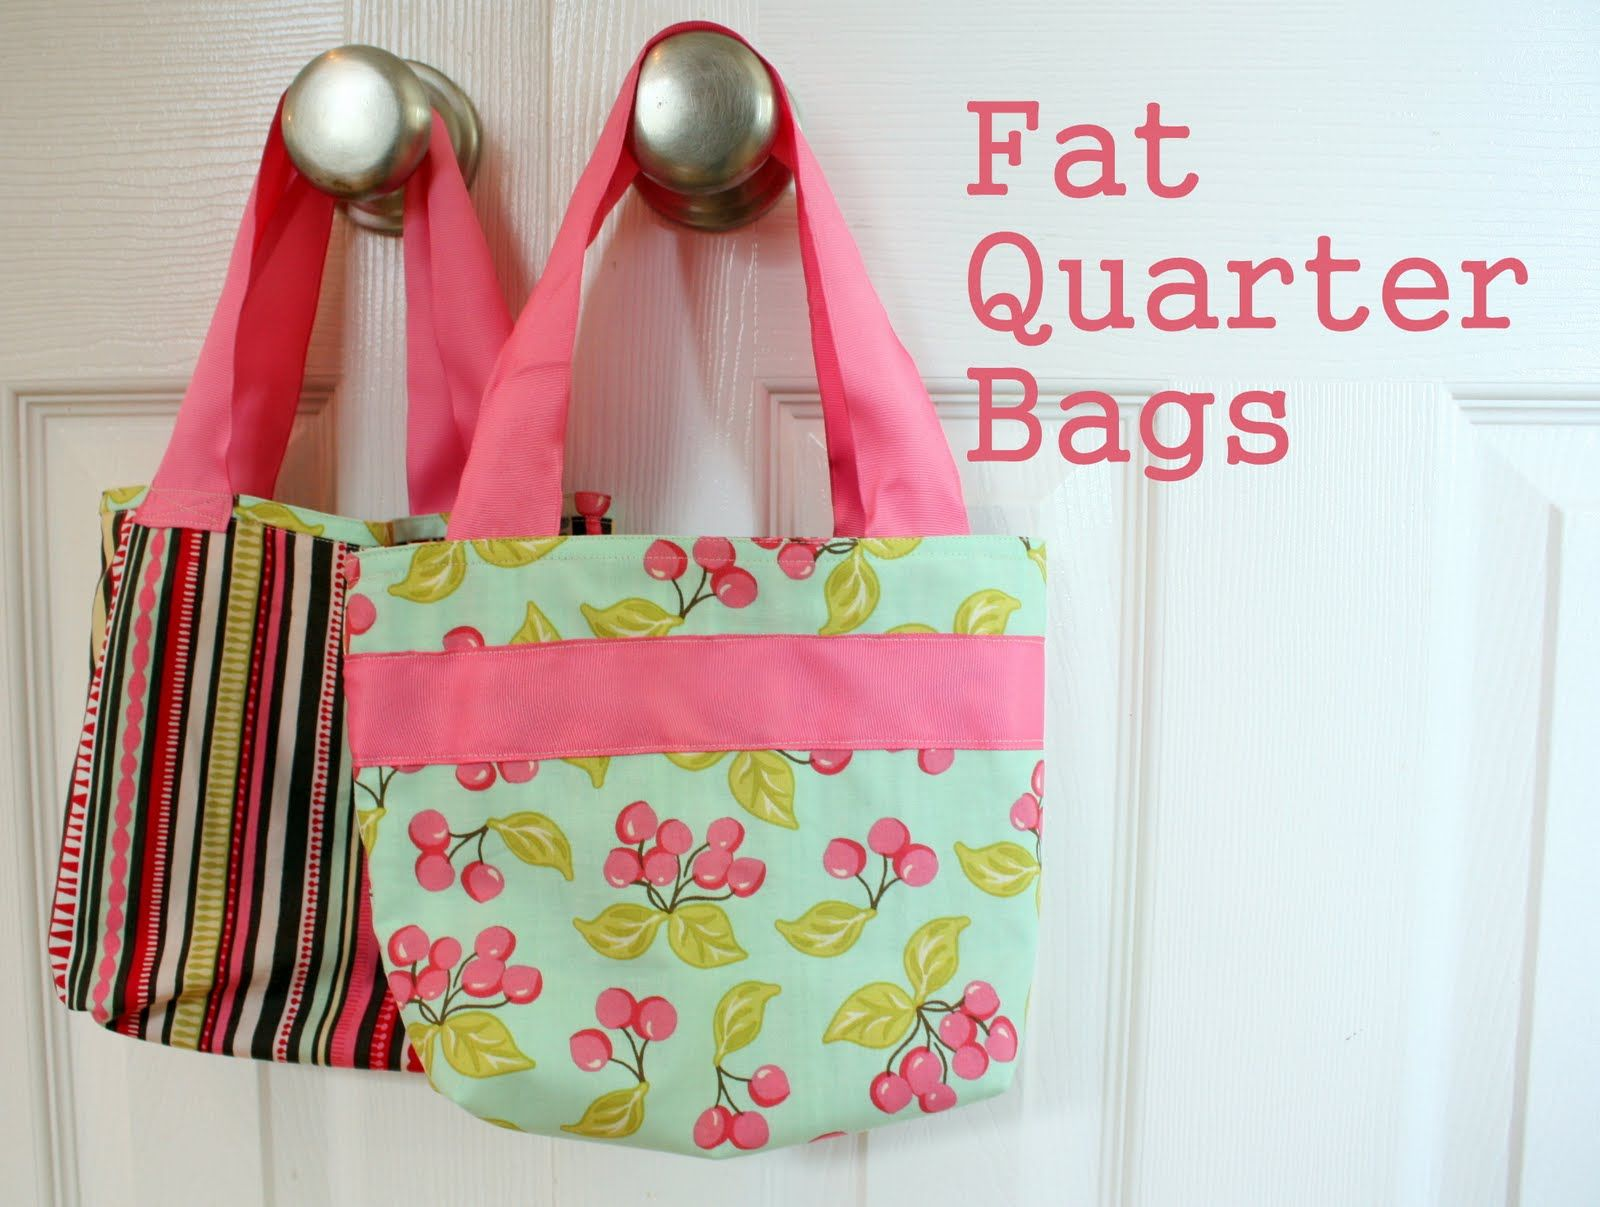 Diy Fat Quarter Projects Fat Quarter Bag Tutorial Sewing Pinterest Sewing